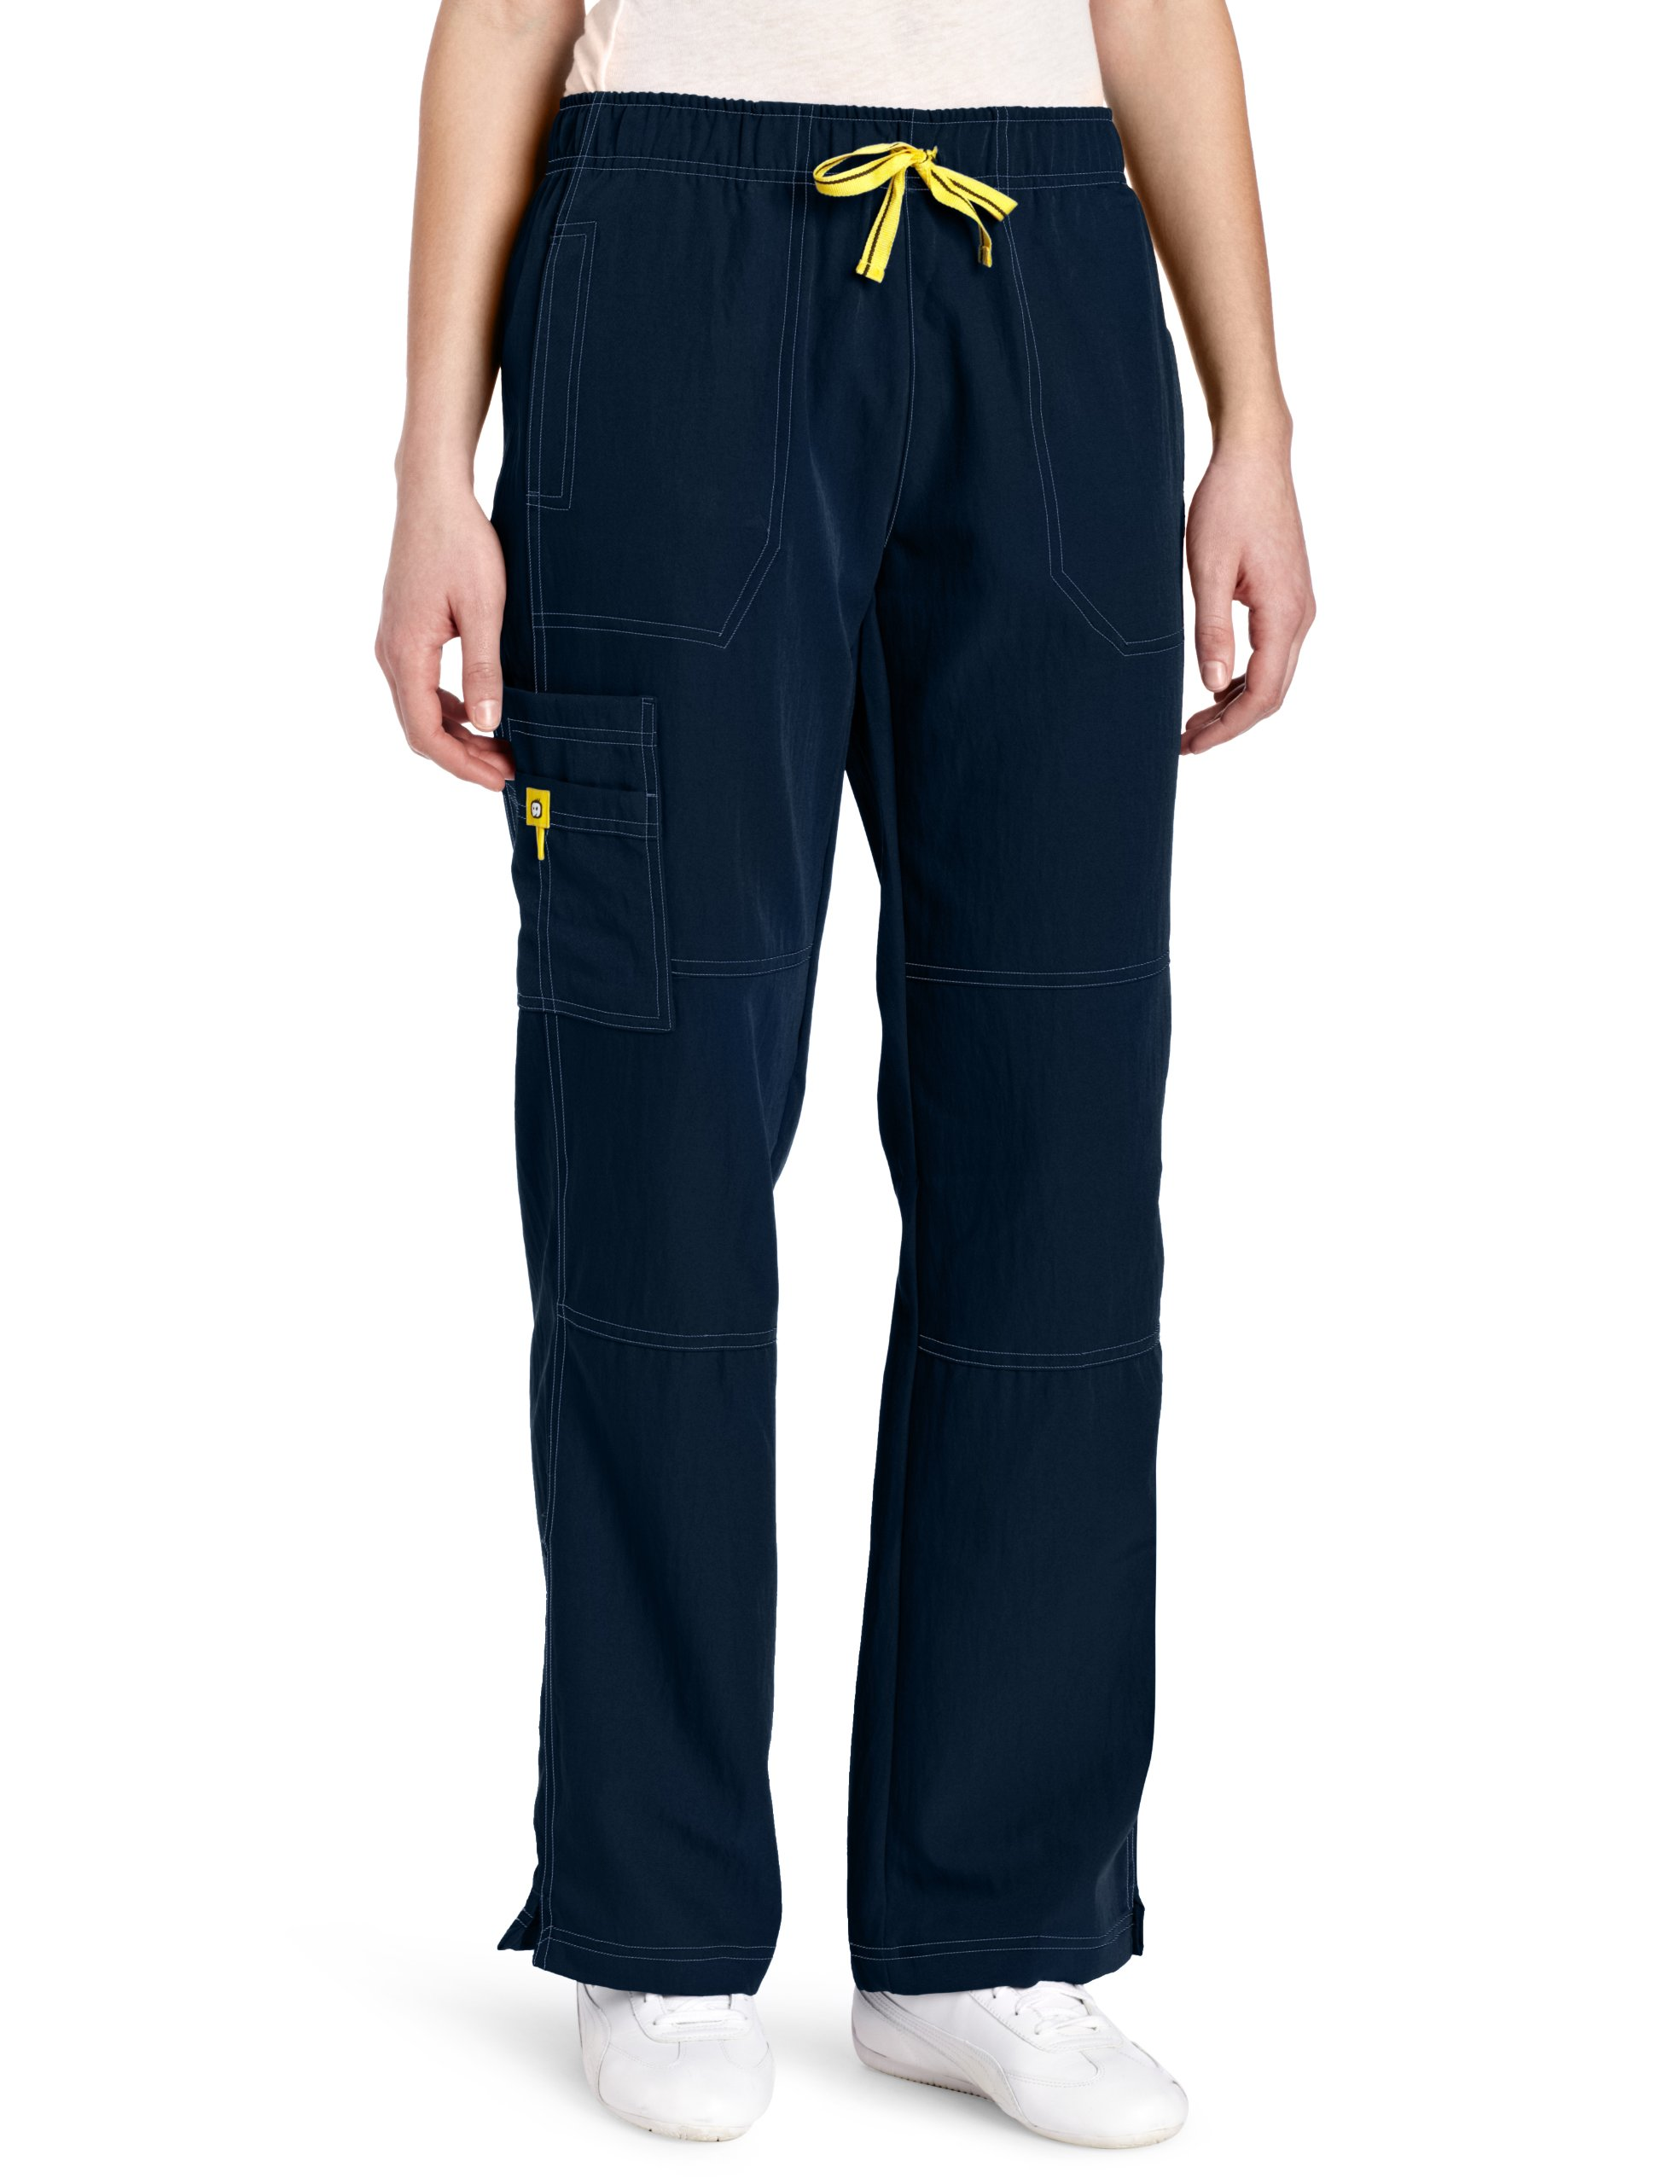 WonderWink Women's Scrubs Four Way Stretch Sporty Cargo Pant, Navy, X-Large